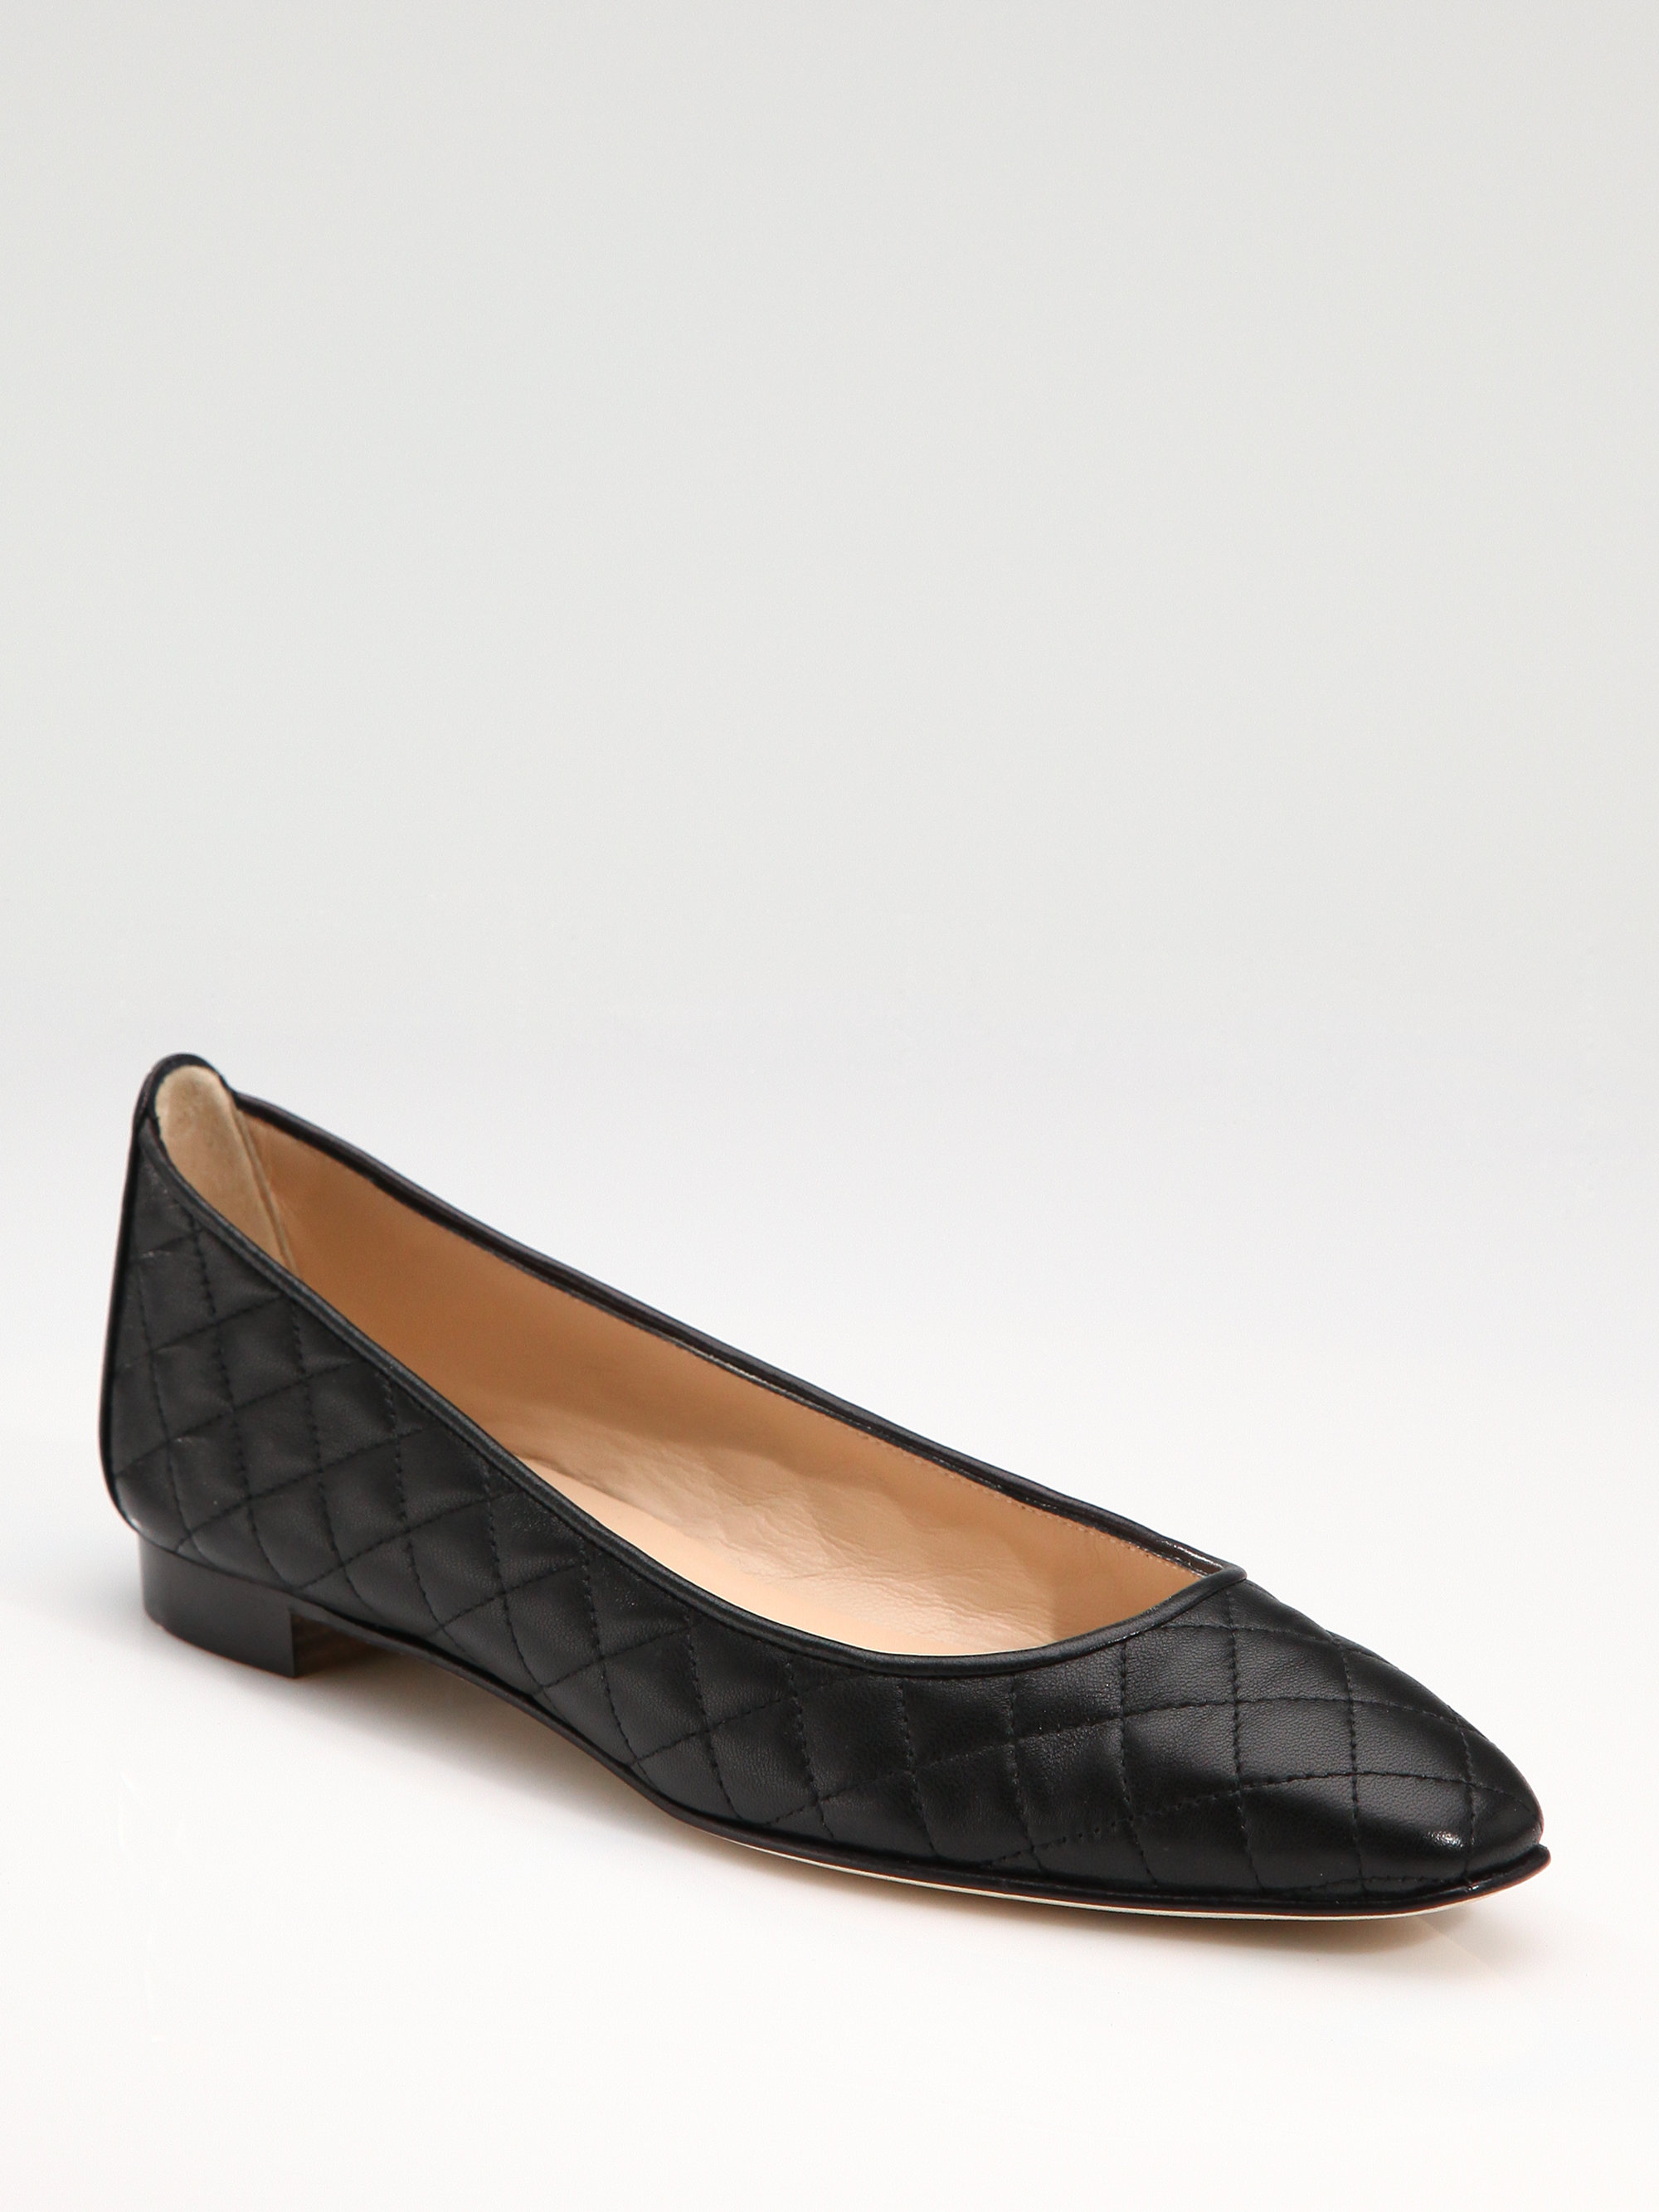 buy cheap Inexpensive Manolo Blahnik Quilted Suede Flats footlocker pictures for sale cheap sale discount 174tdYs5Eh